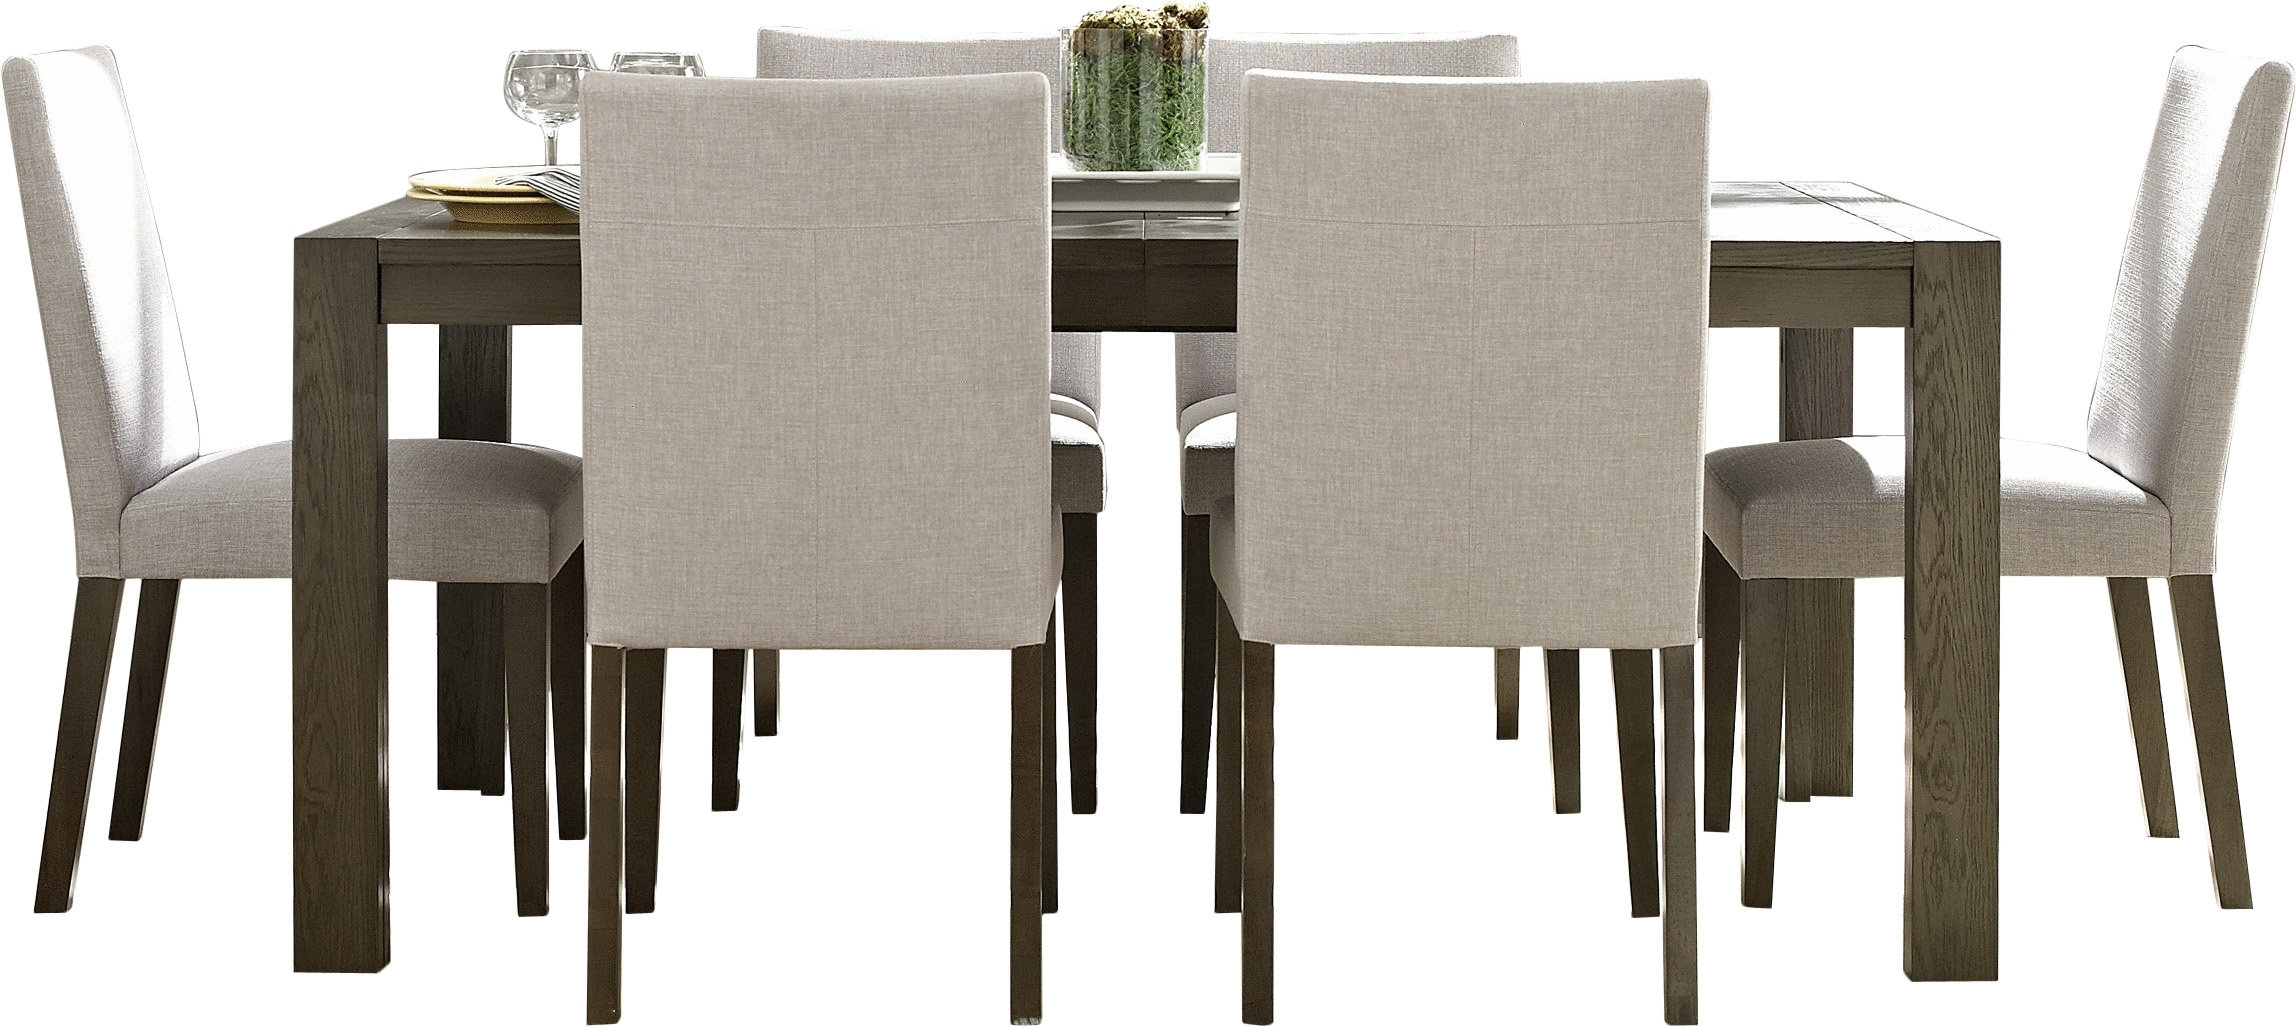 Logan 7 Piece Dining Sets In Most Current Wade Logan Girard 7 Piece Dining Set & Reviews (View 11 of 25)